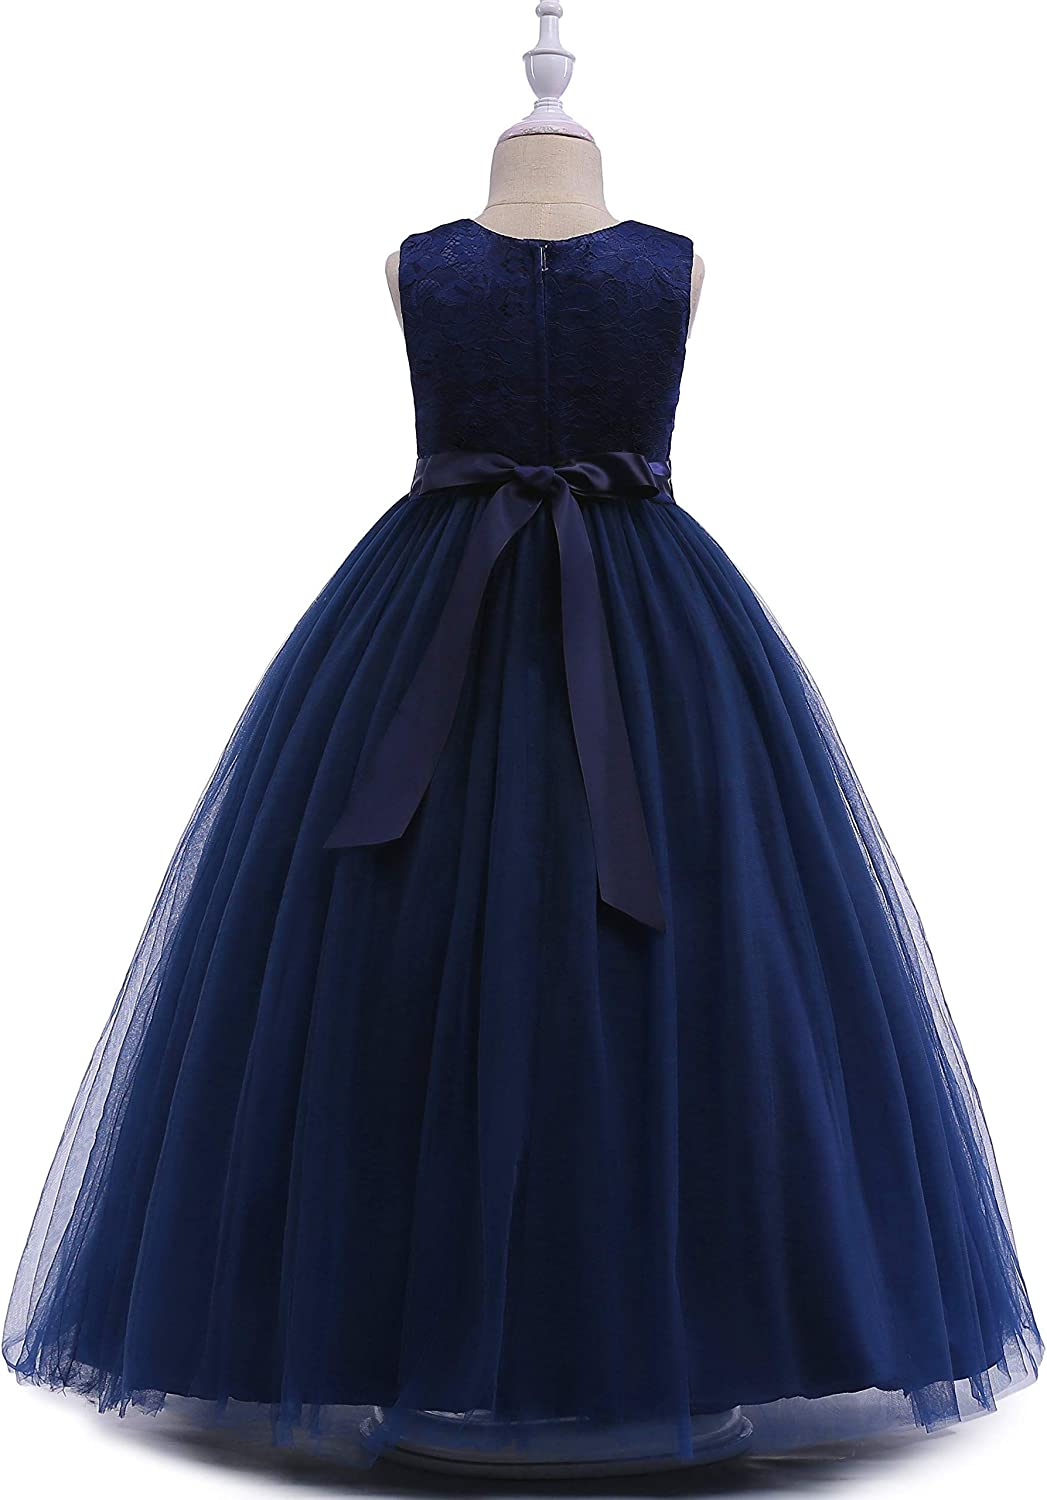 Glamulice Girls Lace Bridesmaid Dress Long A Line Wedding Pageant Dresses Tulle Spaghetti Strap Party Gown Age 3-16Y